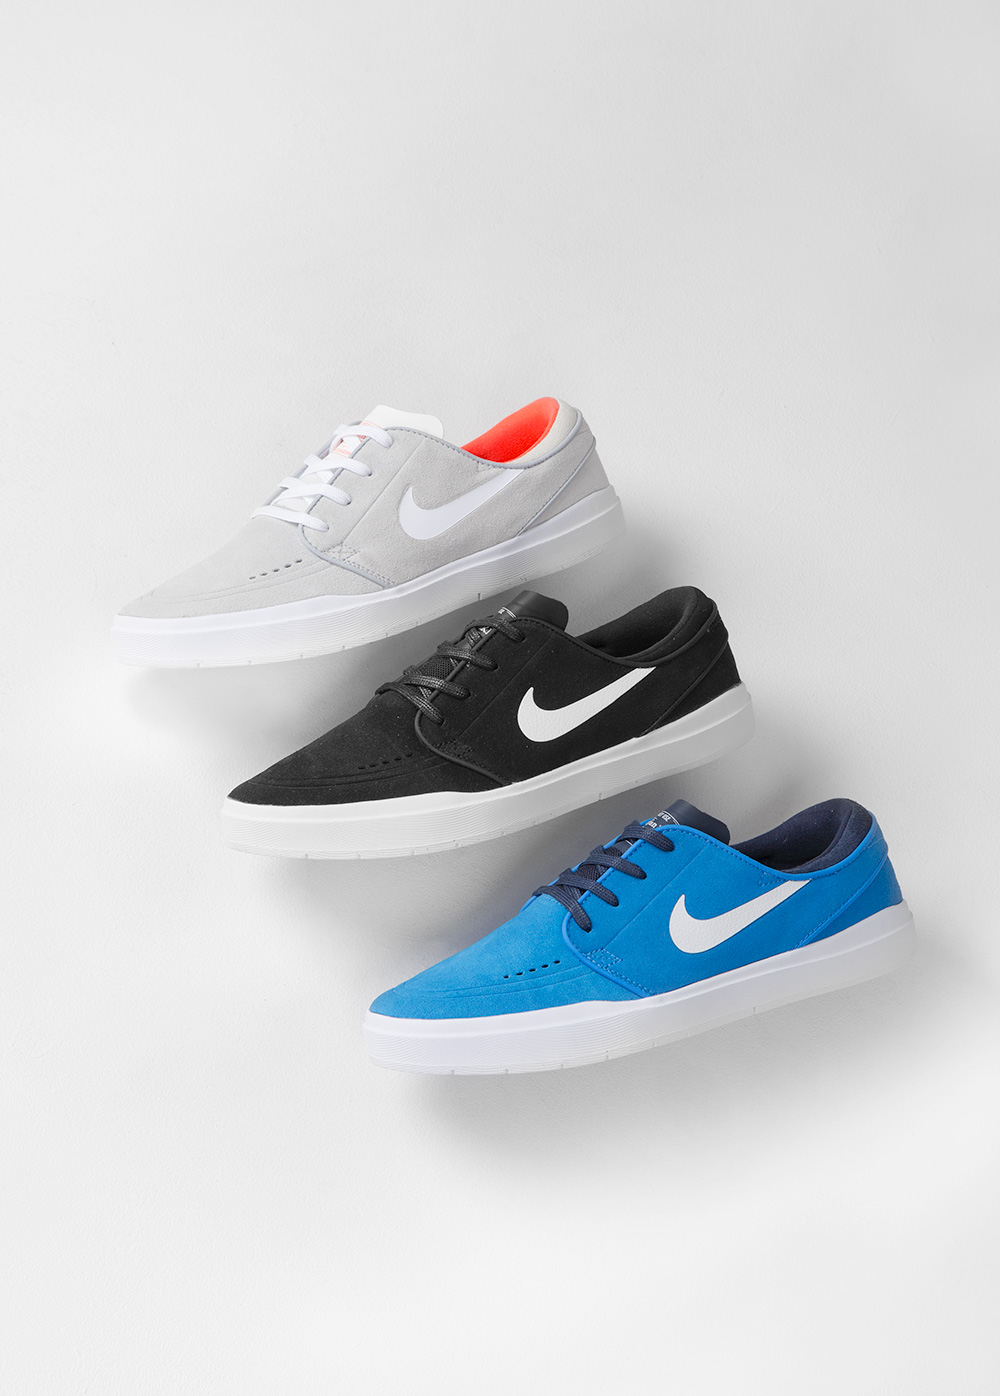 Stefan Janoski Hyperfeel - Shop the latest skate shoes and sneakers from Nike SB at Streetmachine.com